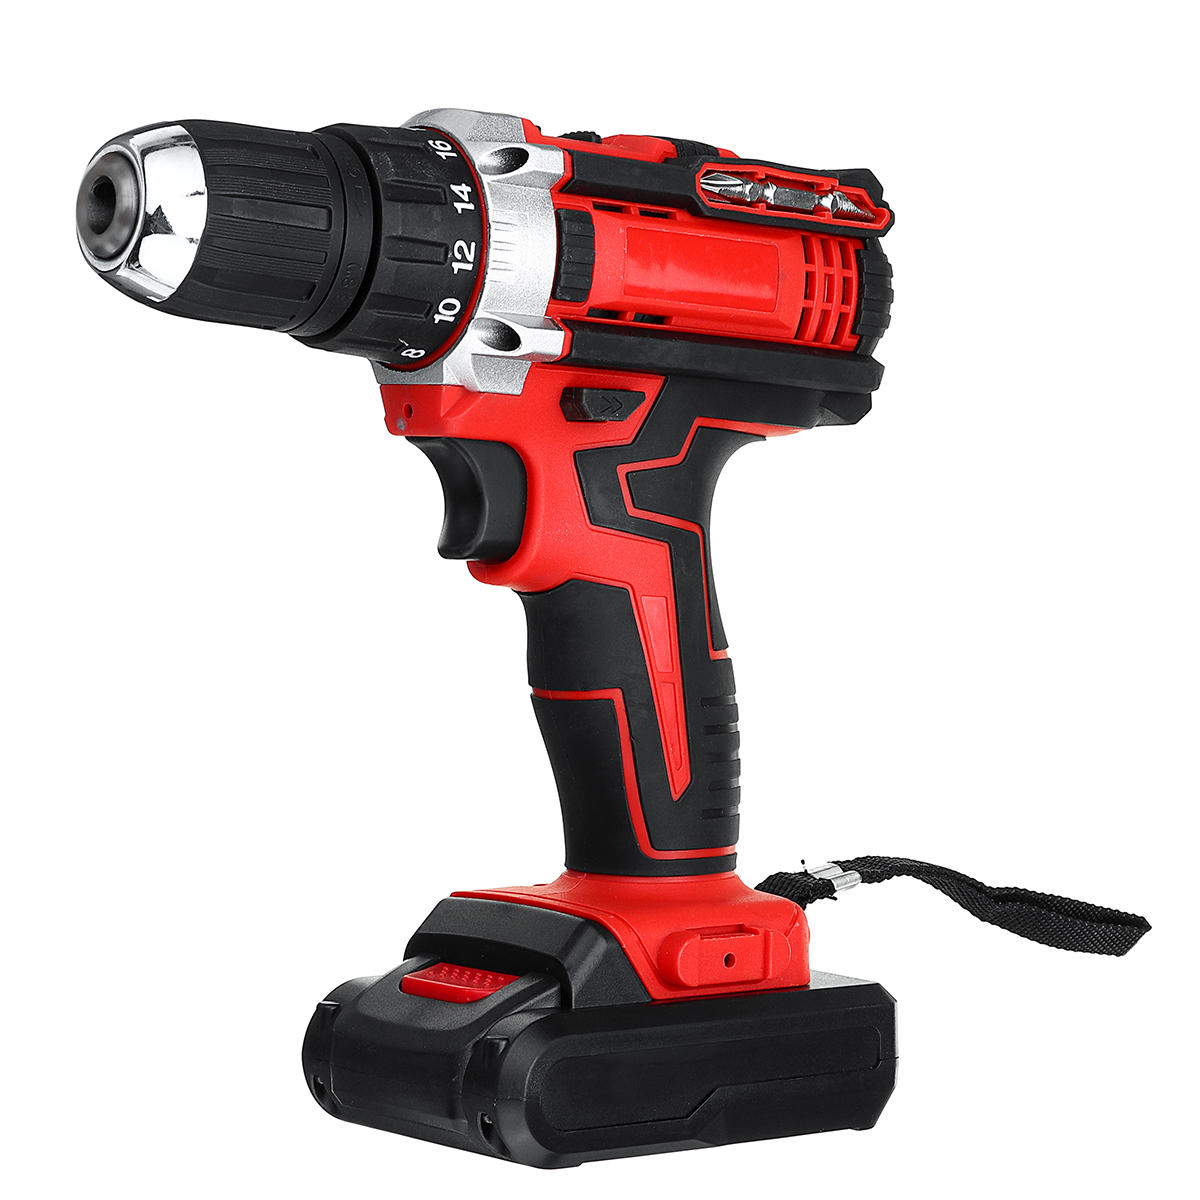 48V 25+3 Gear Rechargable Electric Drill Cordless Impact Drill With 1 or 2 Li-ion Battery With LED Working Light фото